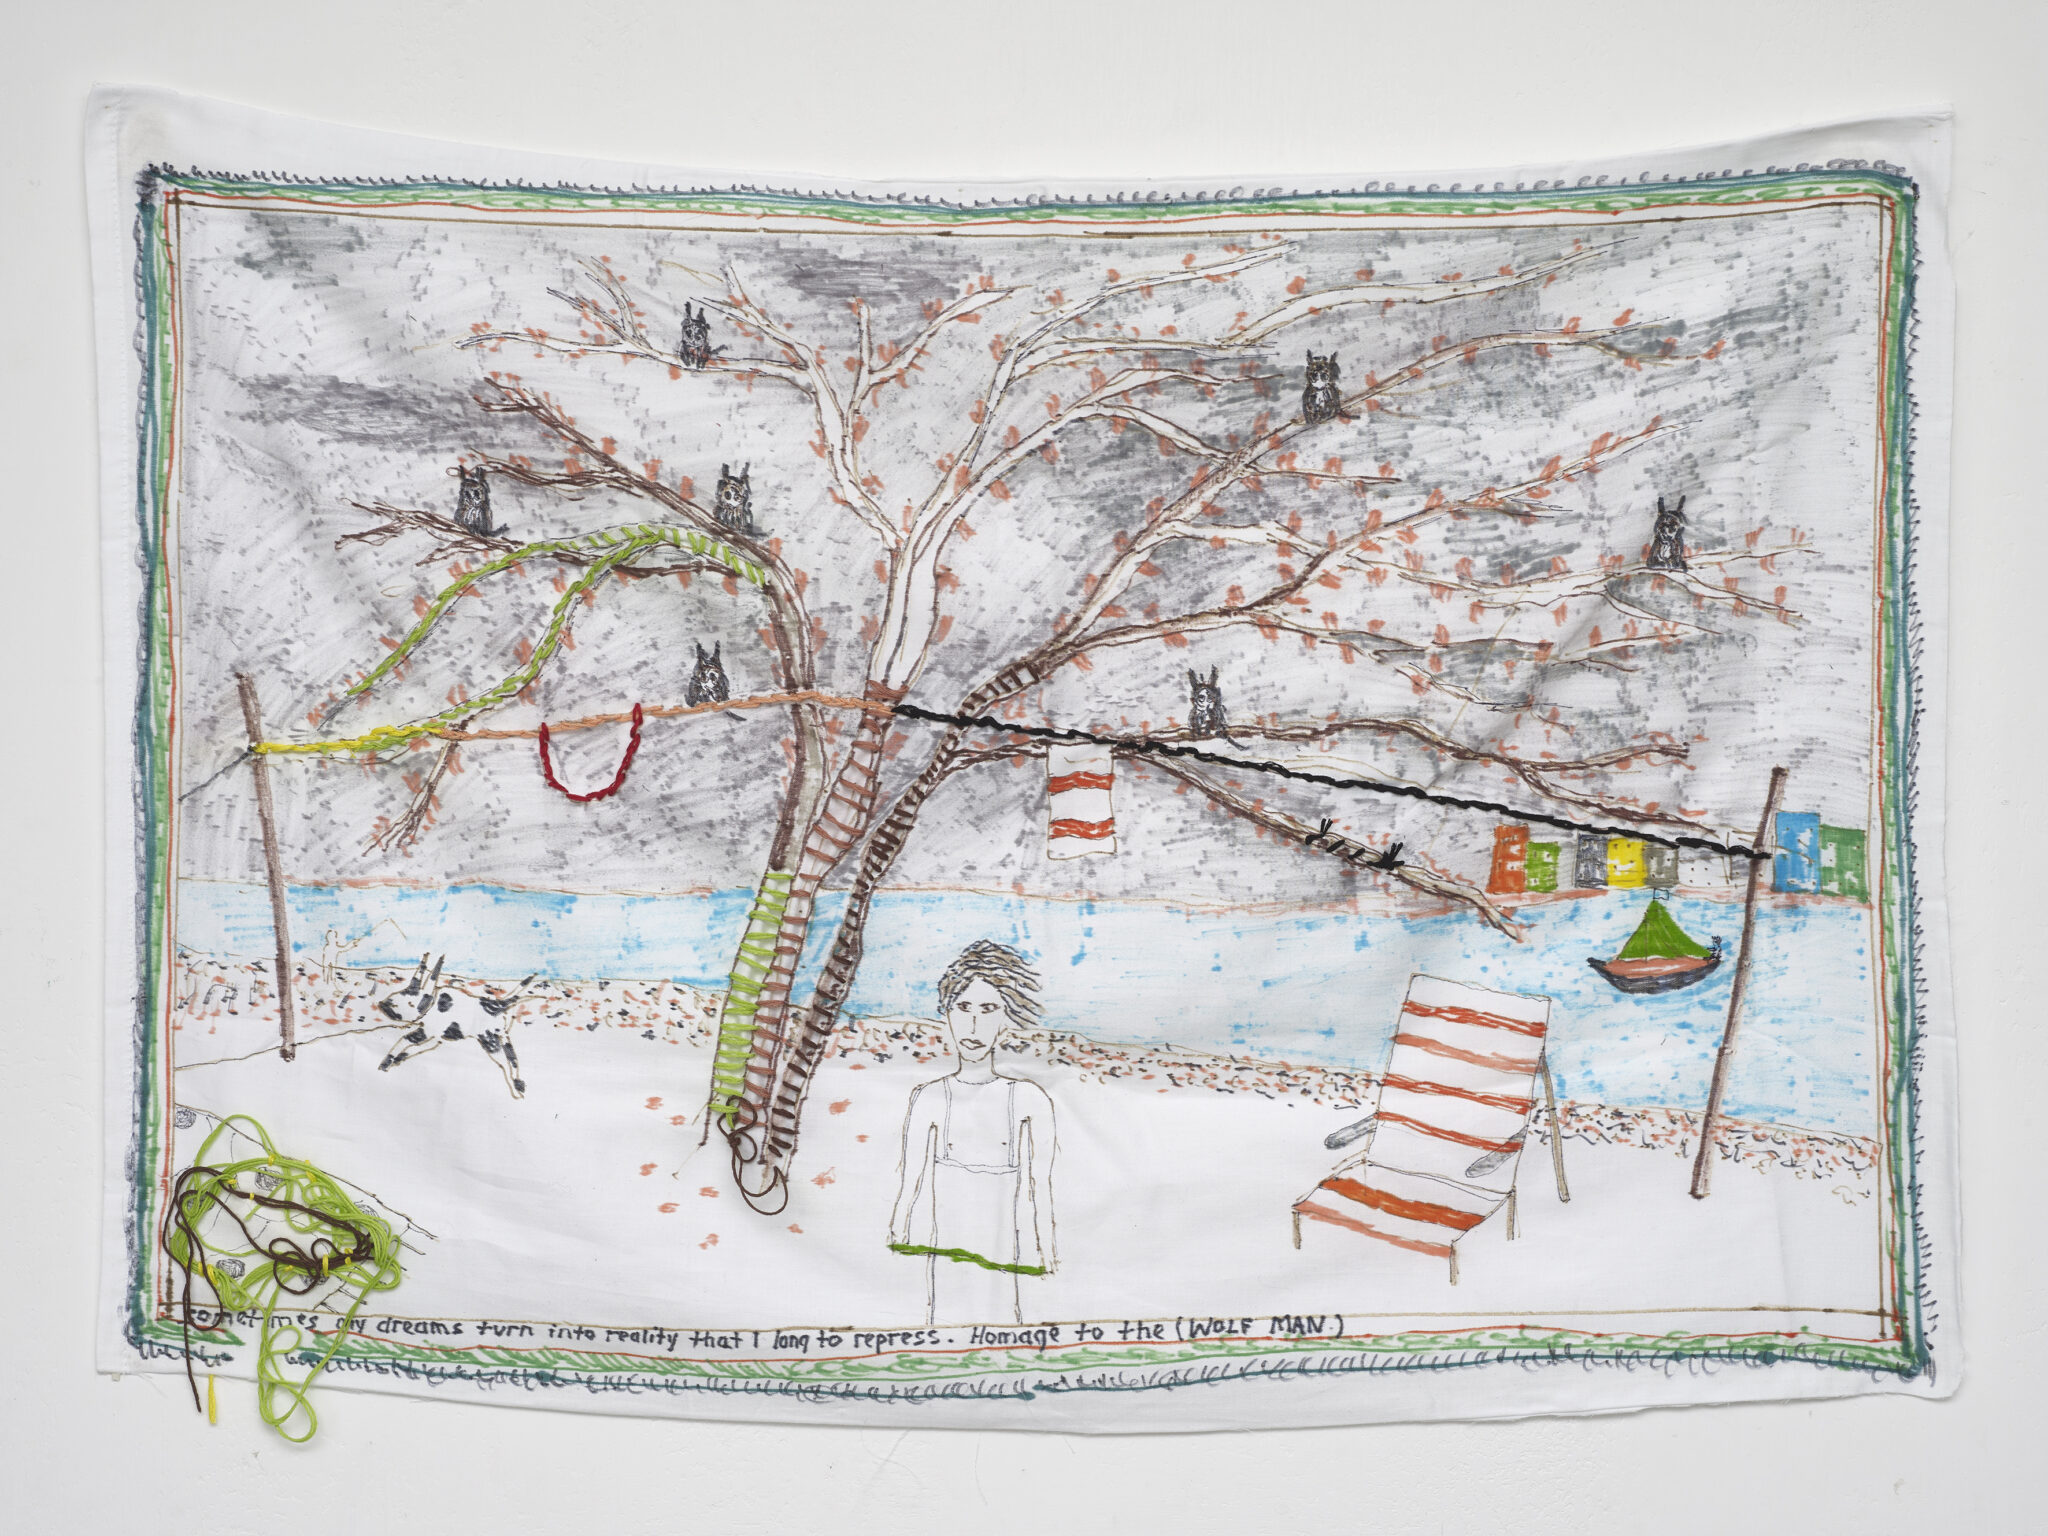 Brian Dawn Chalkley: Freud's Study of the Wolfman 2020 Pencil, felt tip and thread on cotton pillow case 75 cm x 45 cm